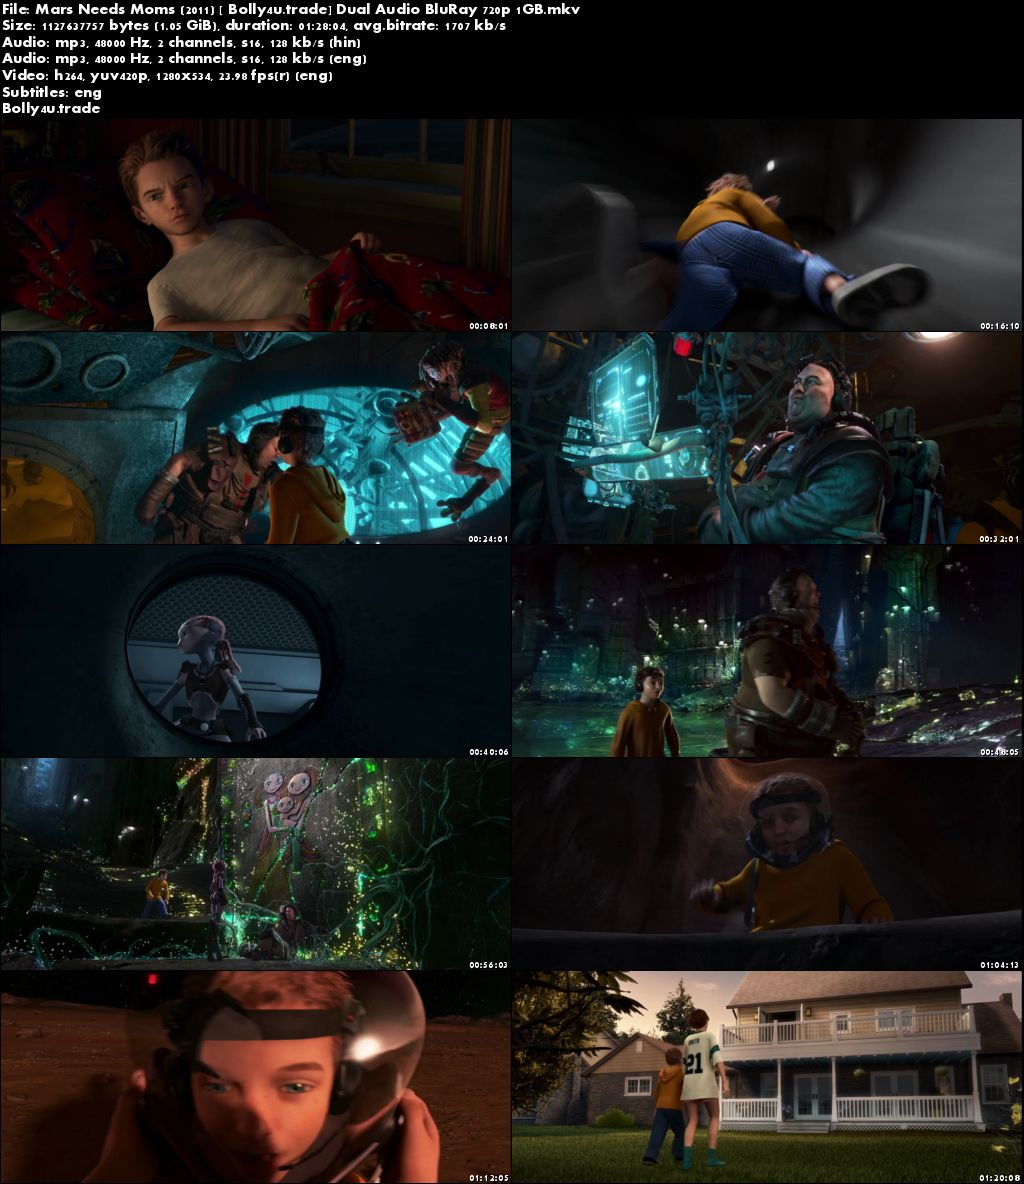 Mars Needs Moms 2011 BRRip 300MB Hindi Dual Audio 480p Download